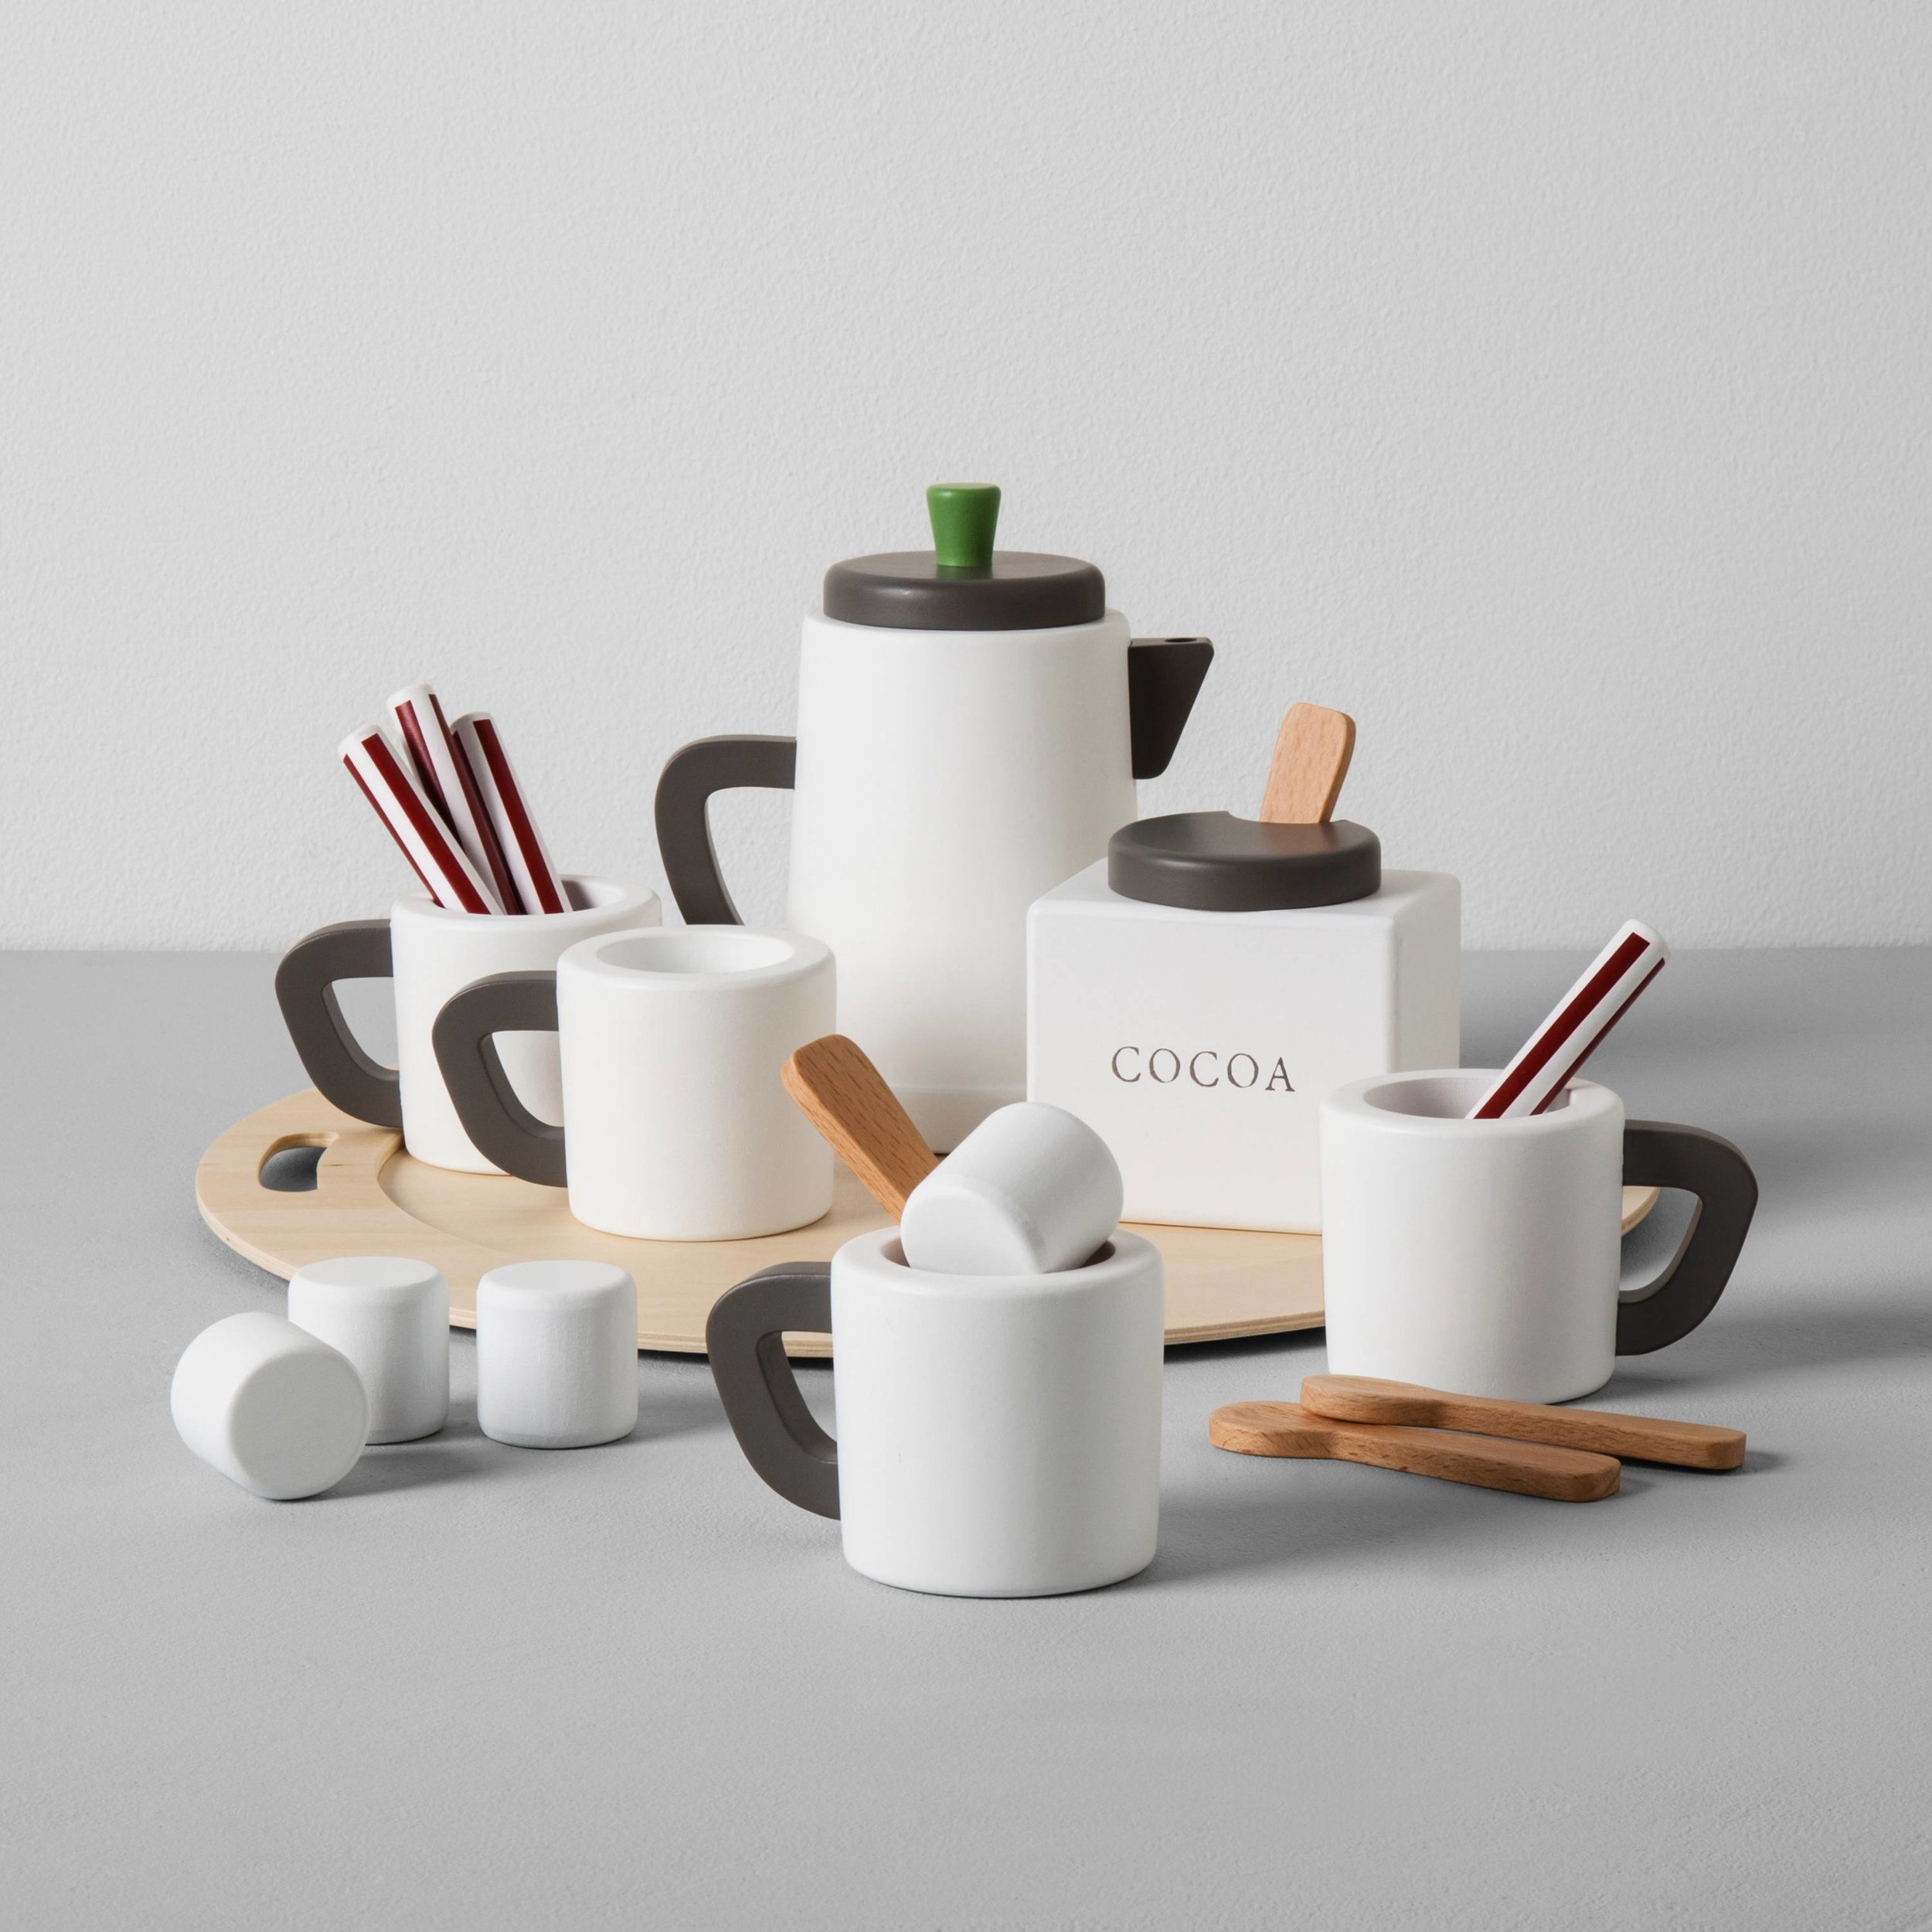 COCOA SET... - because they love cocoa and they would love to make it for everyone